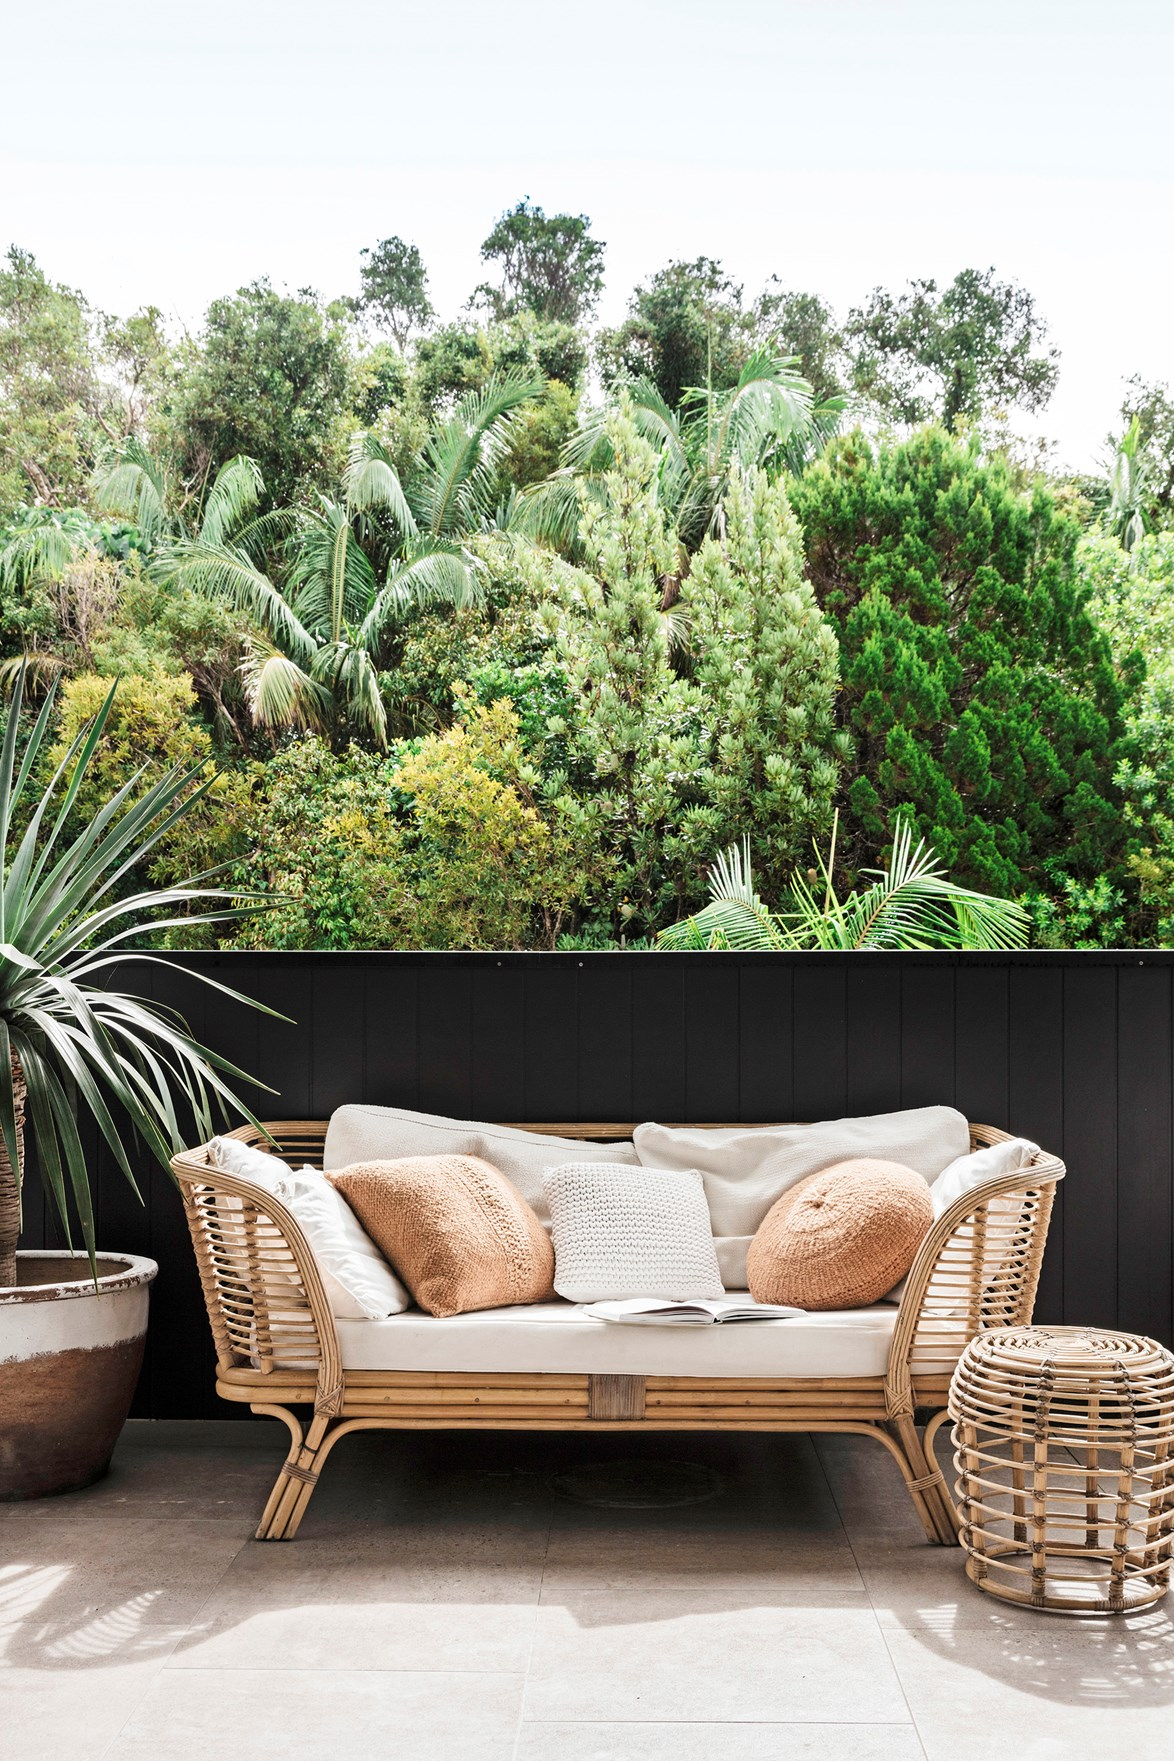 "With its comfy wicker daybed, the balcony of this [modern coastal home](https://www.homestolove.com.au/modern-coastal-interior-ideas-20679|target=""_blank"") is the ideal spot to sit, relax and admire the glorious hinterland views."